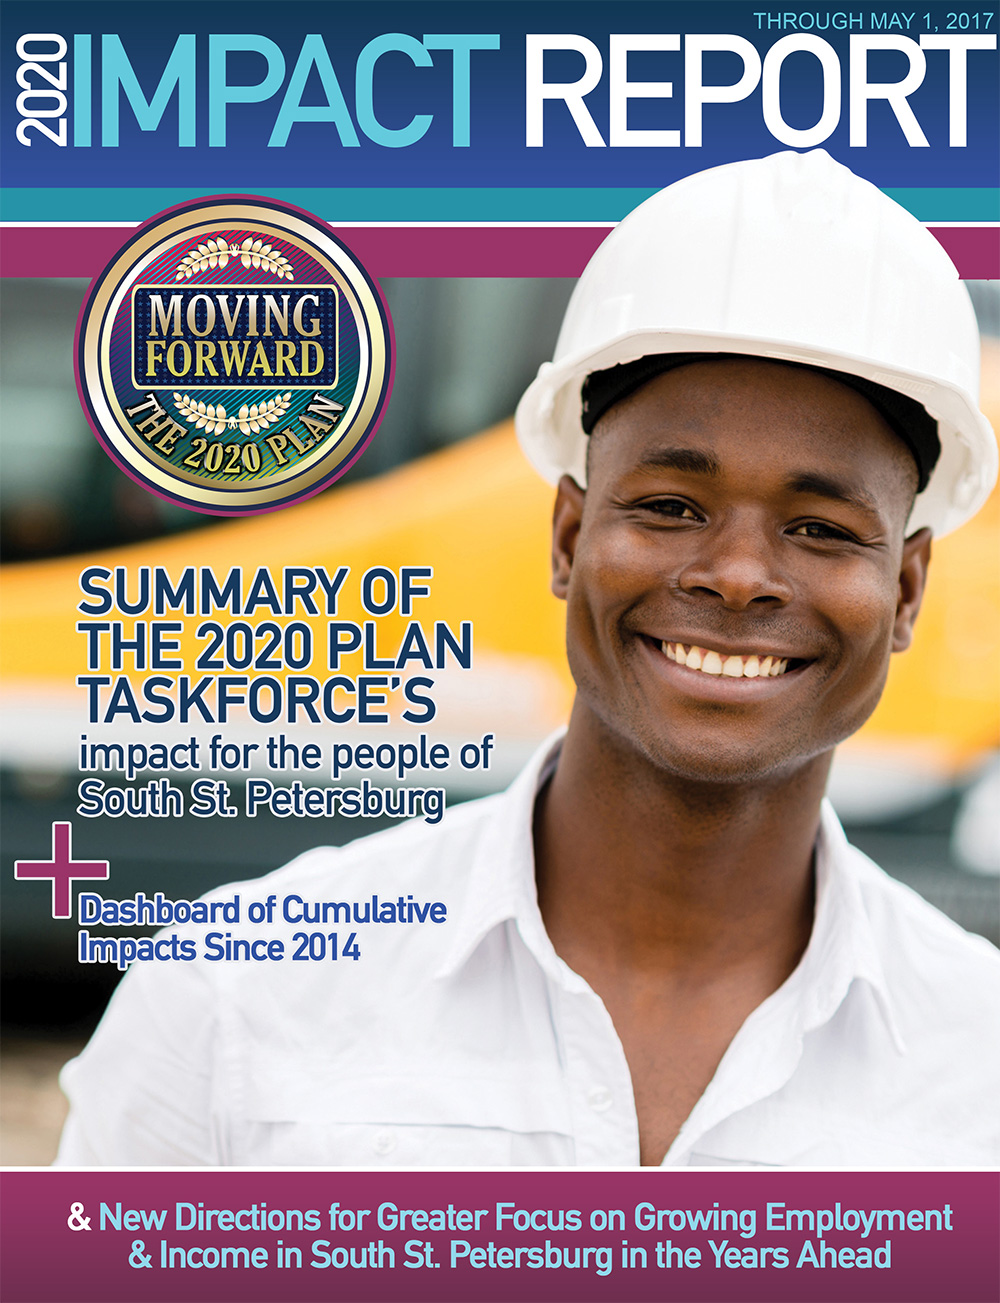 2020 Impact Report - This annual impact report o ers a snapshot of impact resulting from the collective work of 100+ organizations since January 1, 2014 toward the 2020 Plan goal to reduce poverty by 30% in South St. Petersburg.— 2020 Plan Impact Report • May 2017